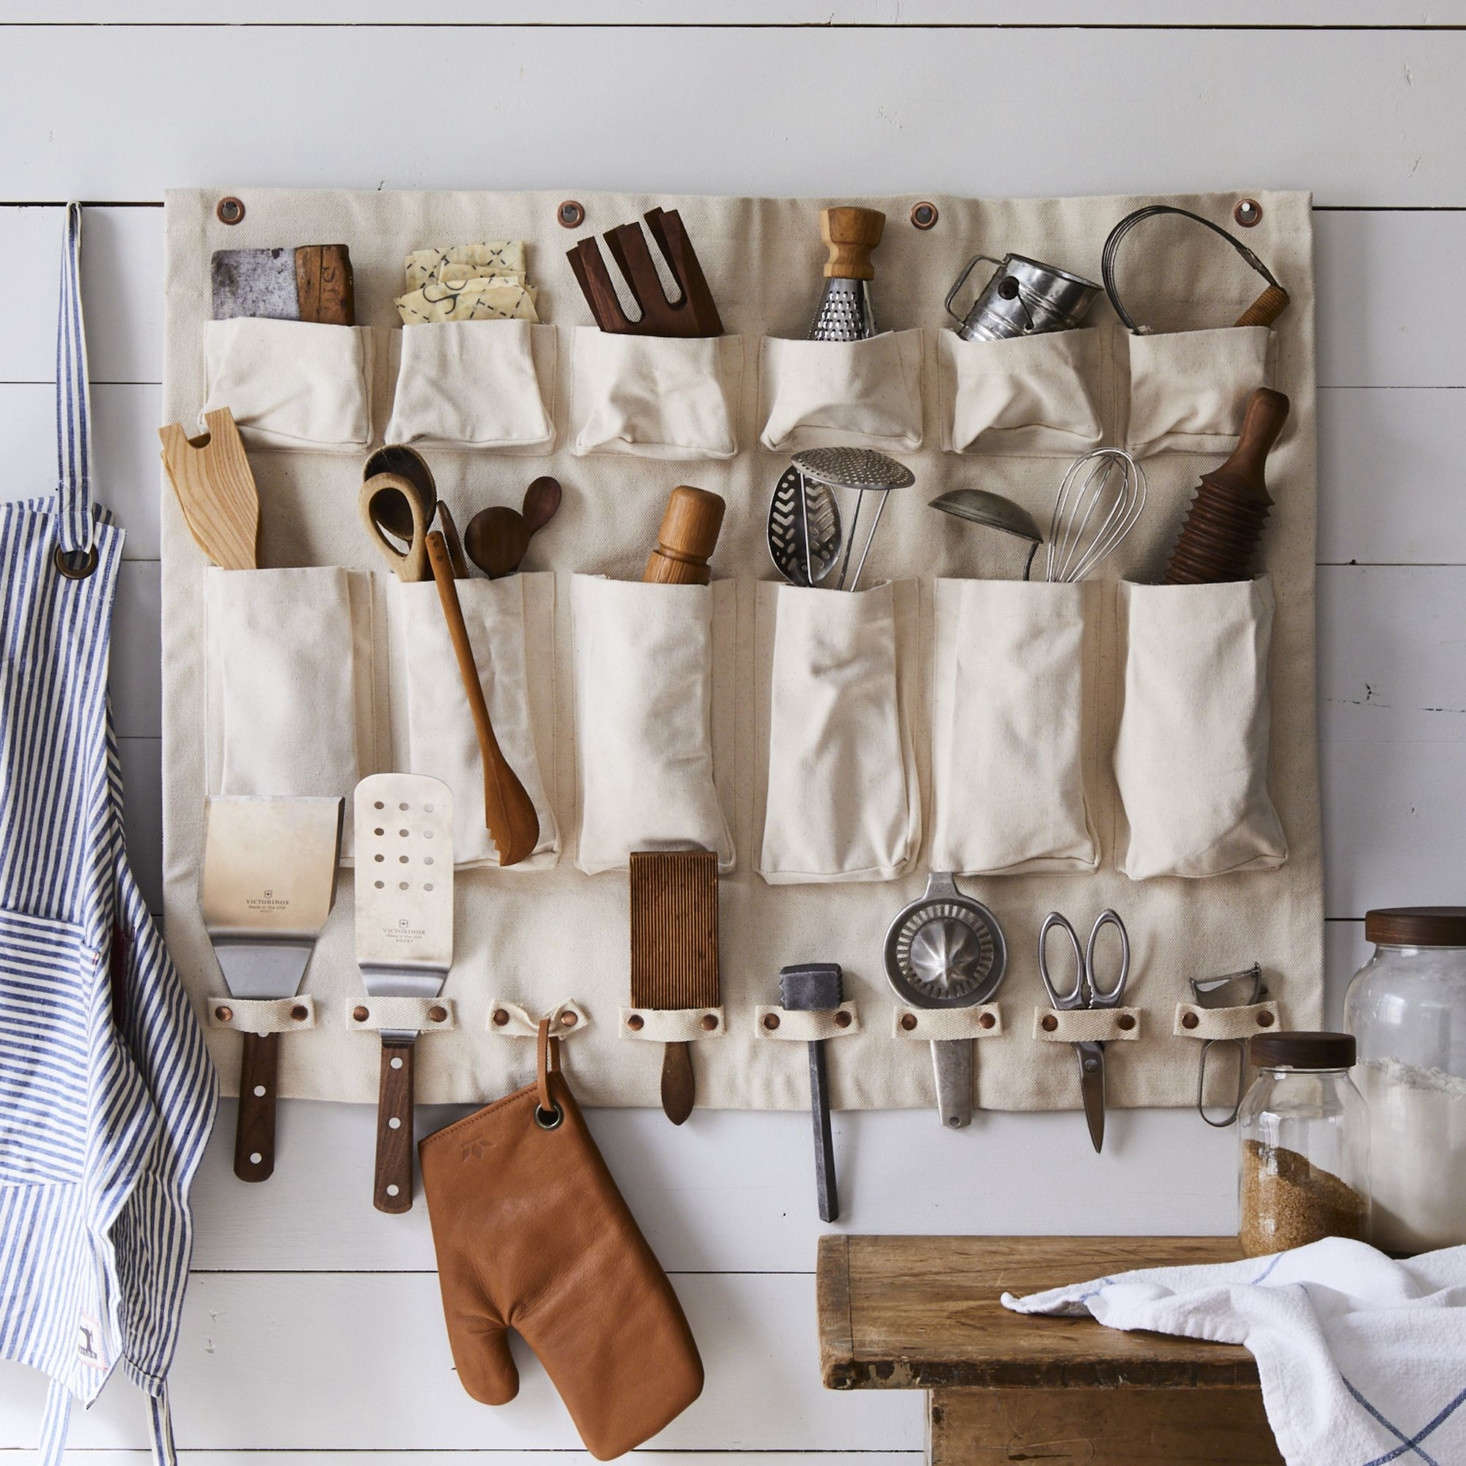 It's designed by a floral designer, but the canvas wall organizer is truly multi-purpose and can be used throughout the home—in the kitchen to corral cooking tools, in the closet to hold accessories (those straps would be a perfect place to hang your glasses), or in the bathroom to store toiletries.